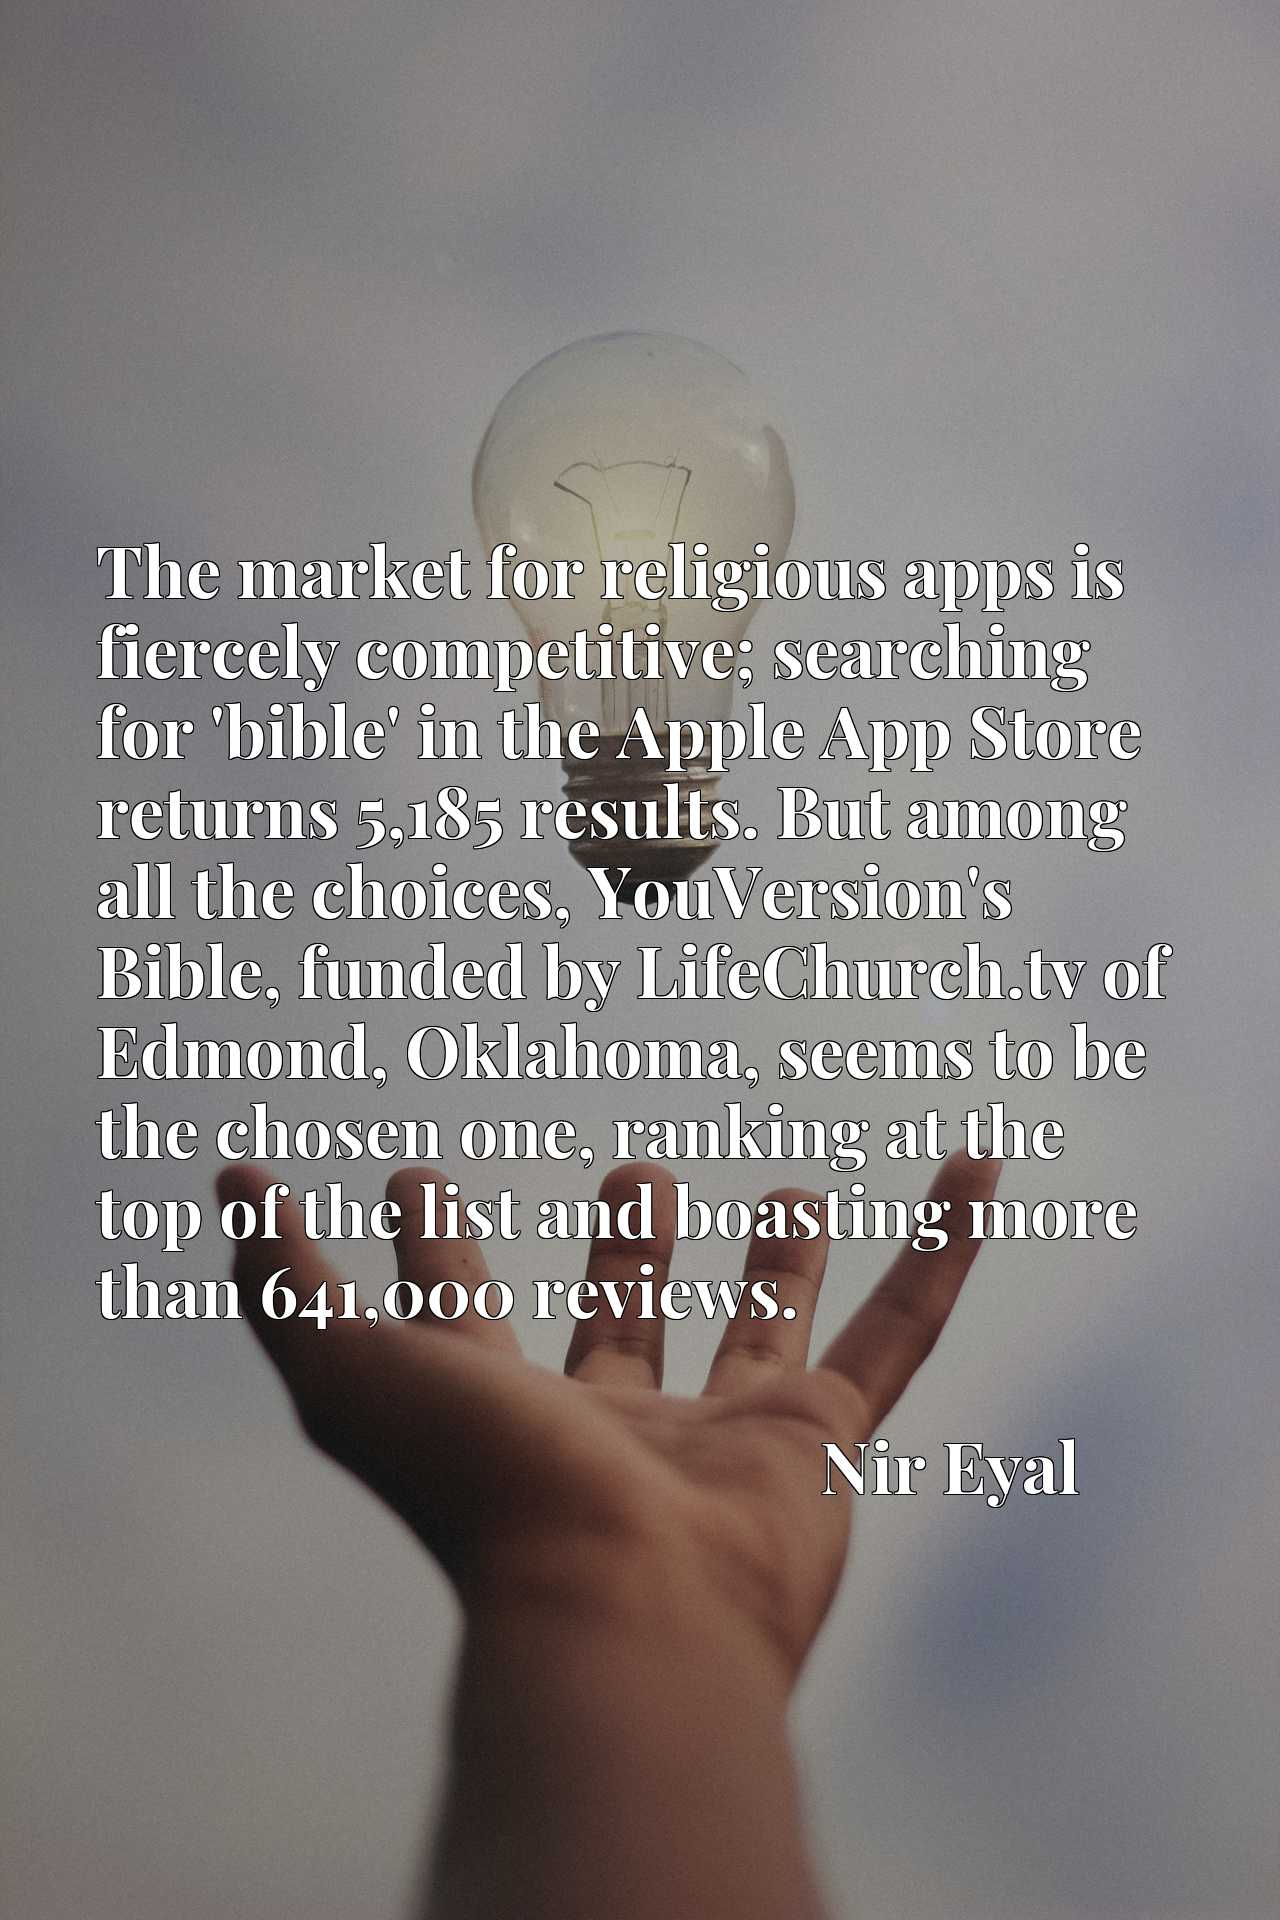 The market for religious apps is fiercely competitive; searching for 'bible' in the Apple App Store returns 5,185 results. But among all the choices, YouVersion's Bible, funded by LifeChurch.tv of Edmond, Oklahoma, seems to be the chosen one, ranking at the top of the list and boasting more than 641,000 reviews.